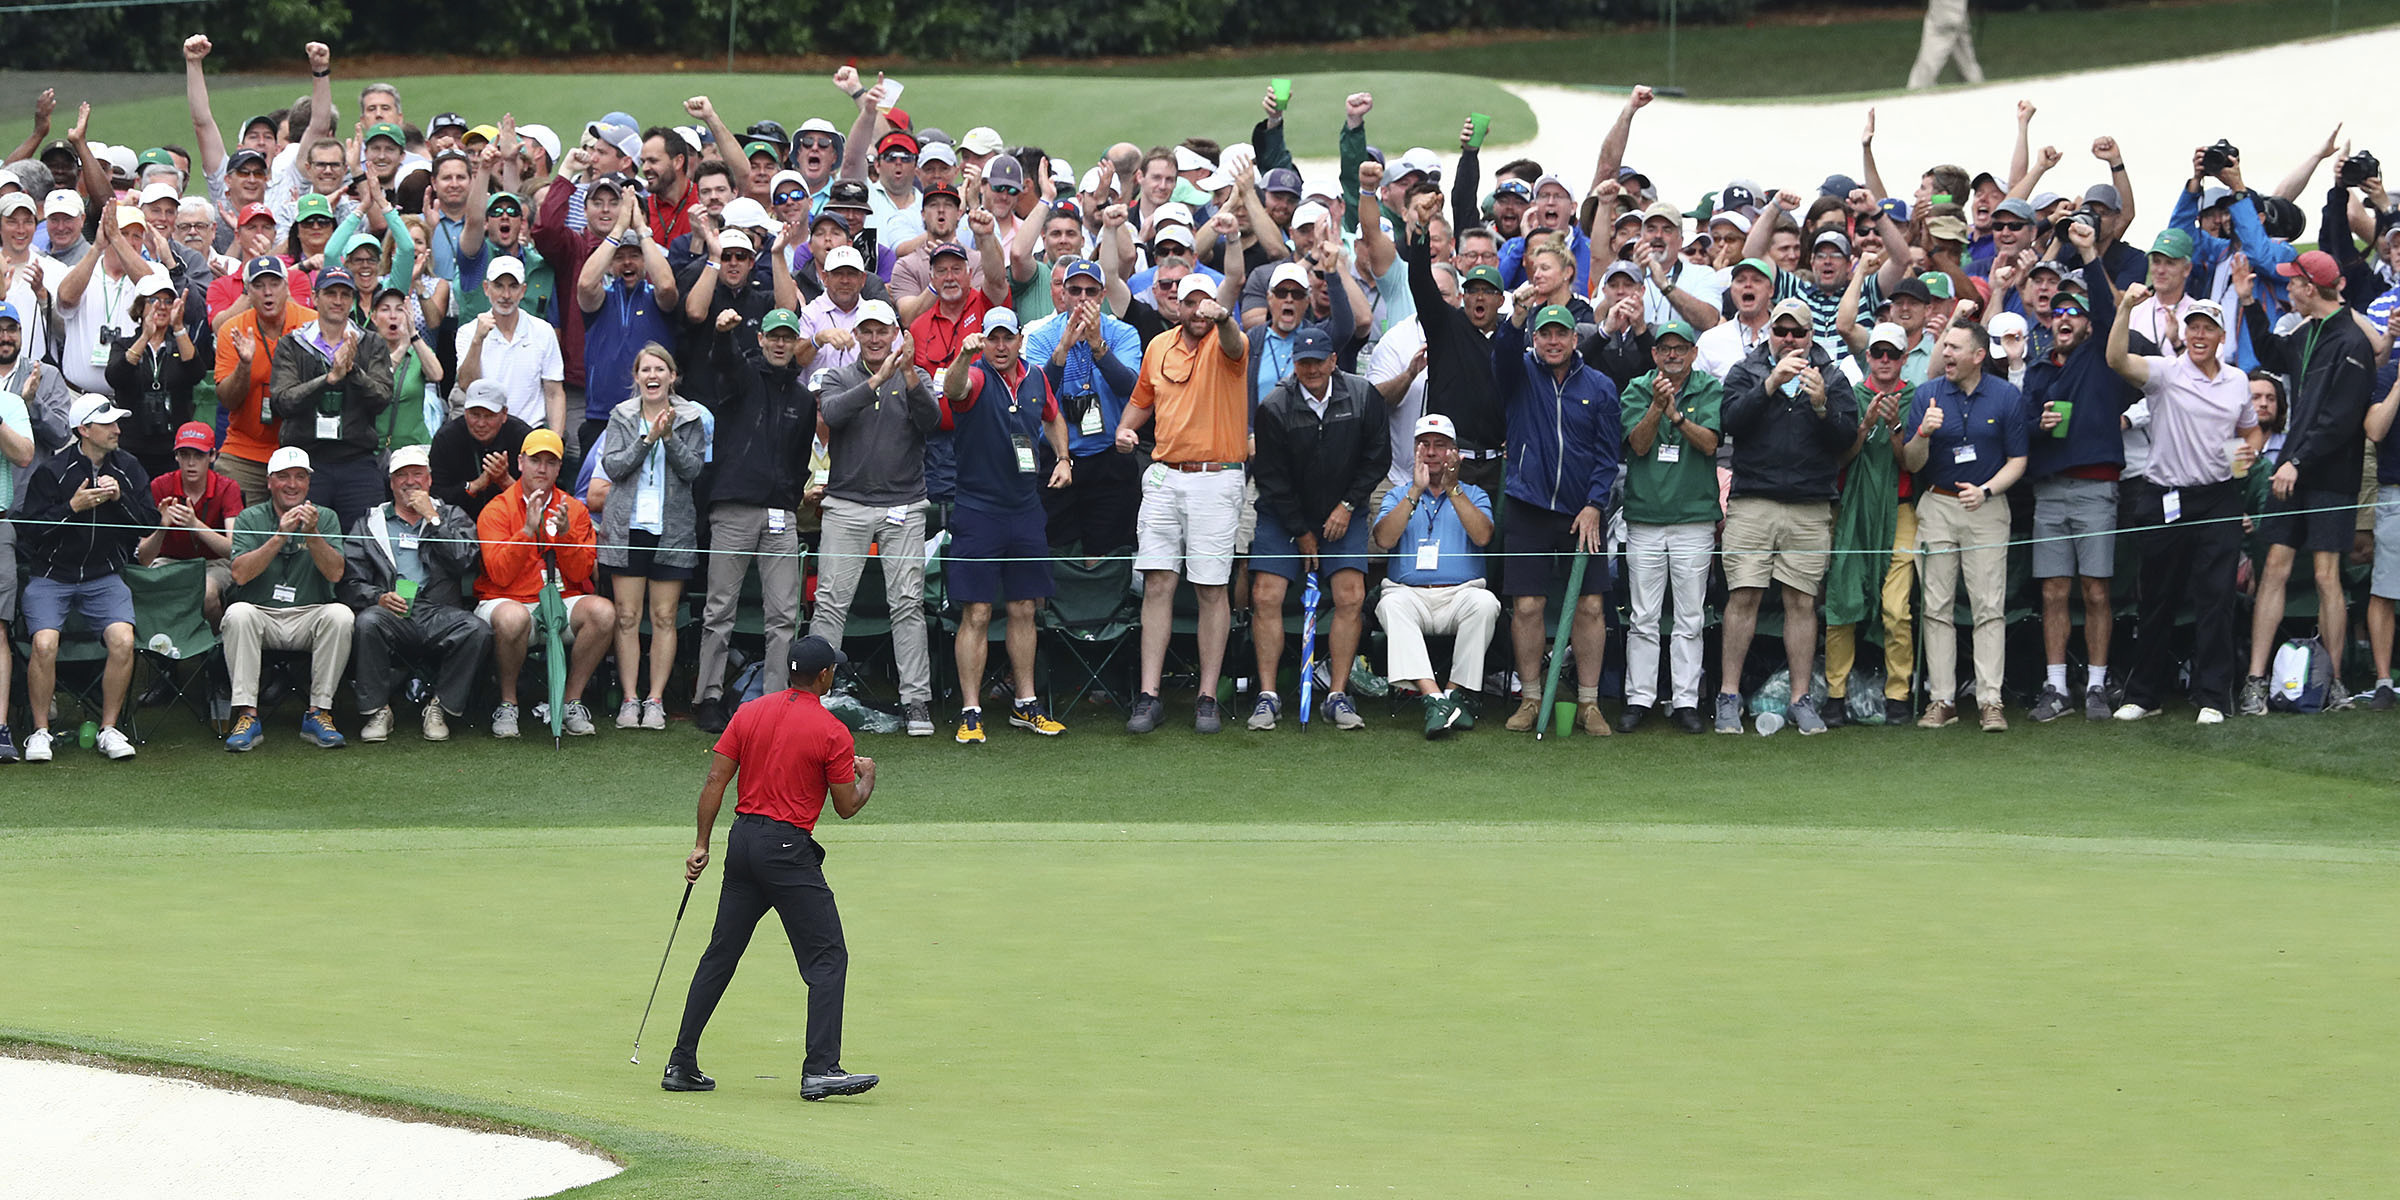 The gallery reacts as Tiger Woods makes his birdie putt on the 16th green on his way to winning the Masters by one stroke at Augusta National Golf Club on Sunday. Curtis Compton/ccompton@ajc.com